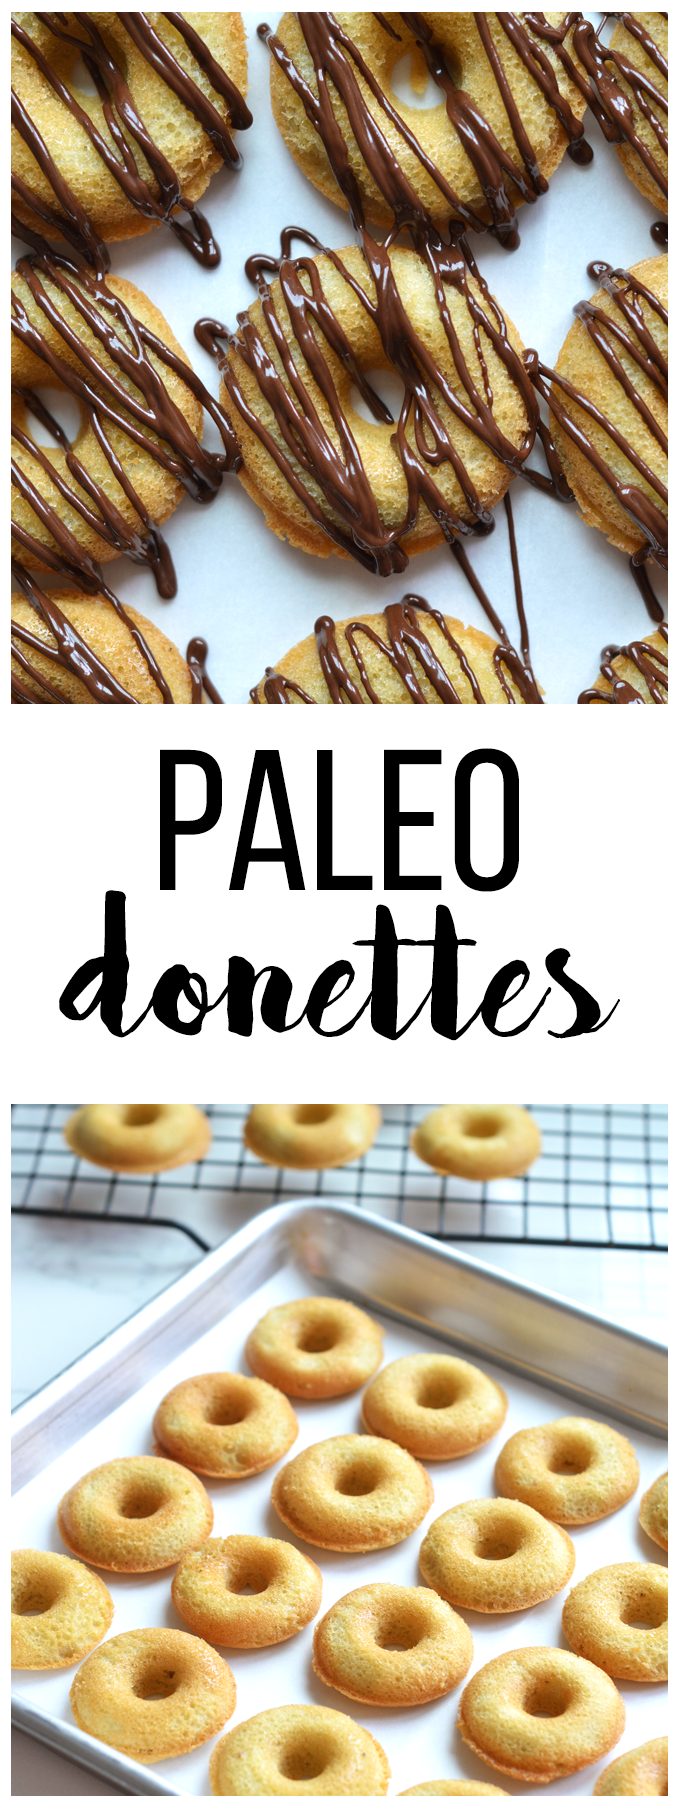 These paleo donettes are perfect little bites of a grain free treat!